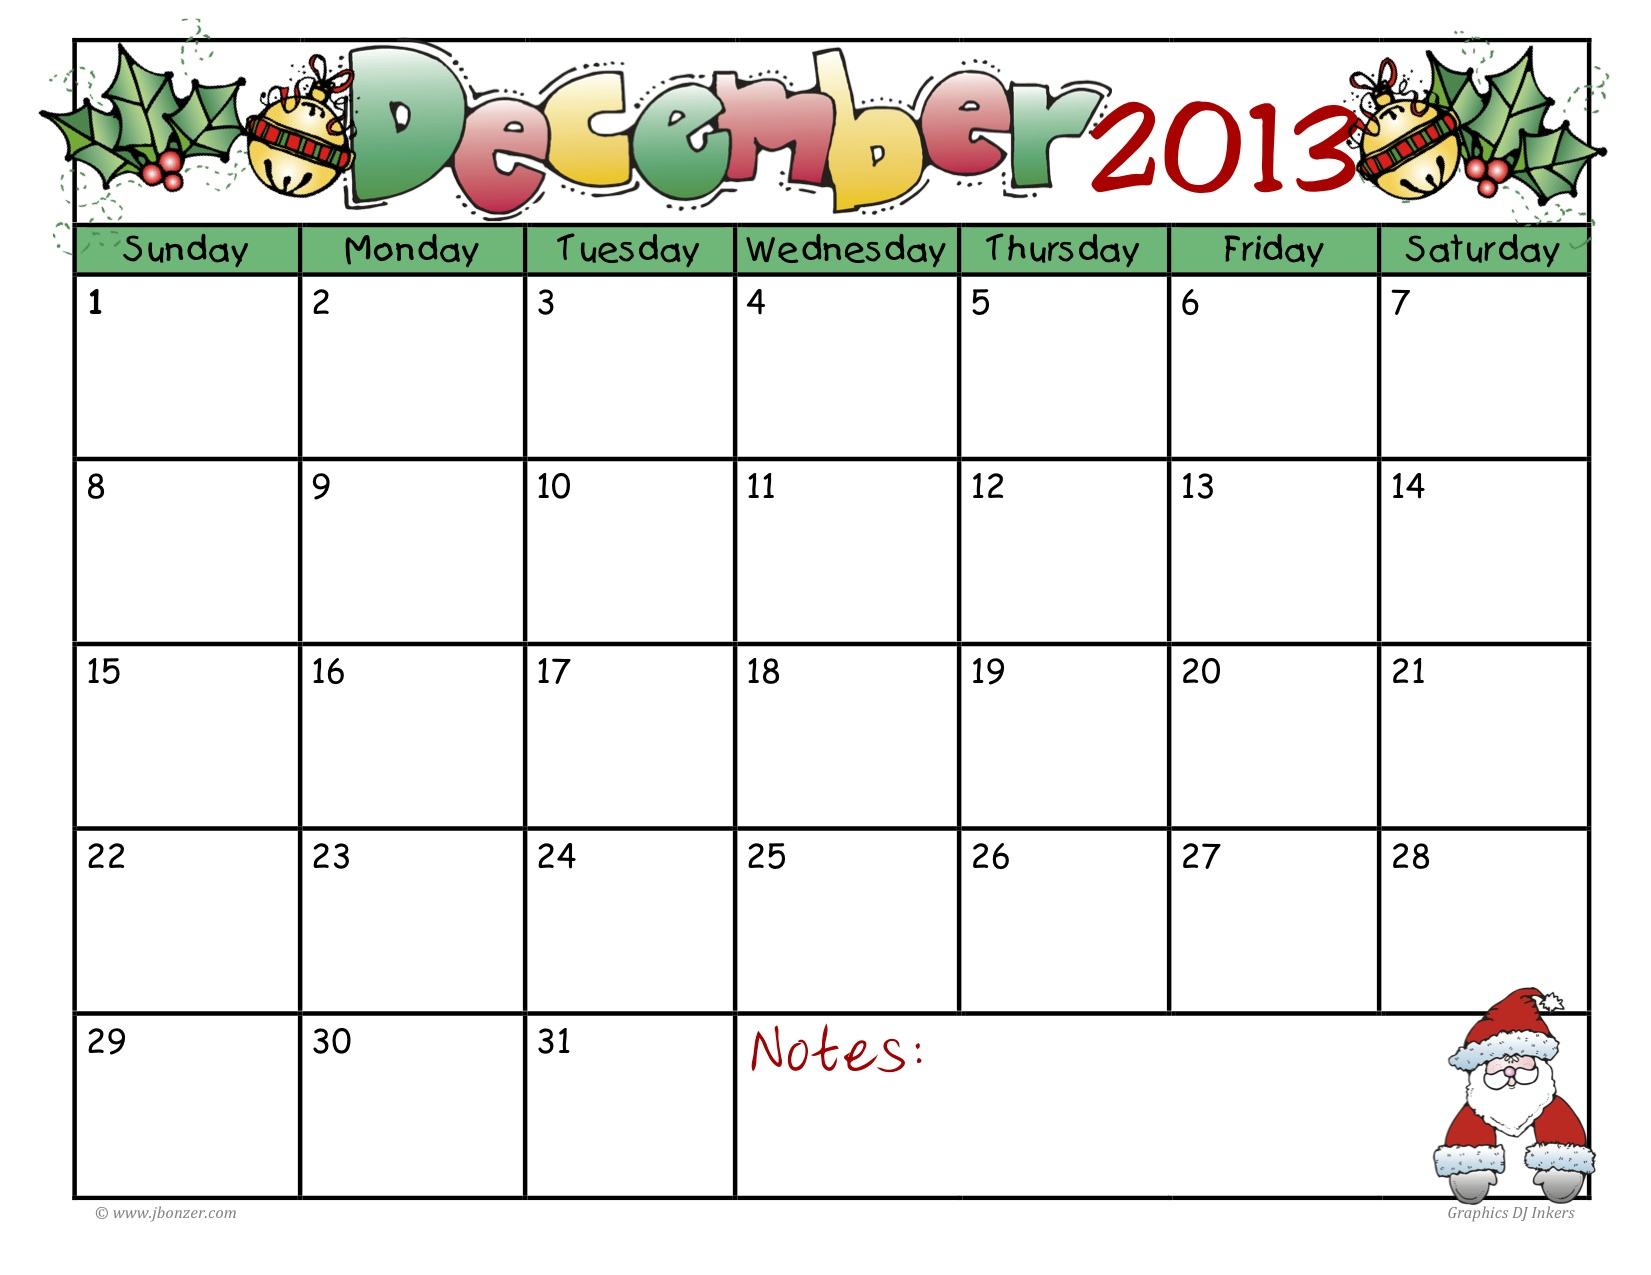 ... jpeg 272kB, Blank Editable Dec 2013 Calendar | Calendar Template 2016